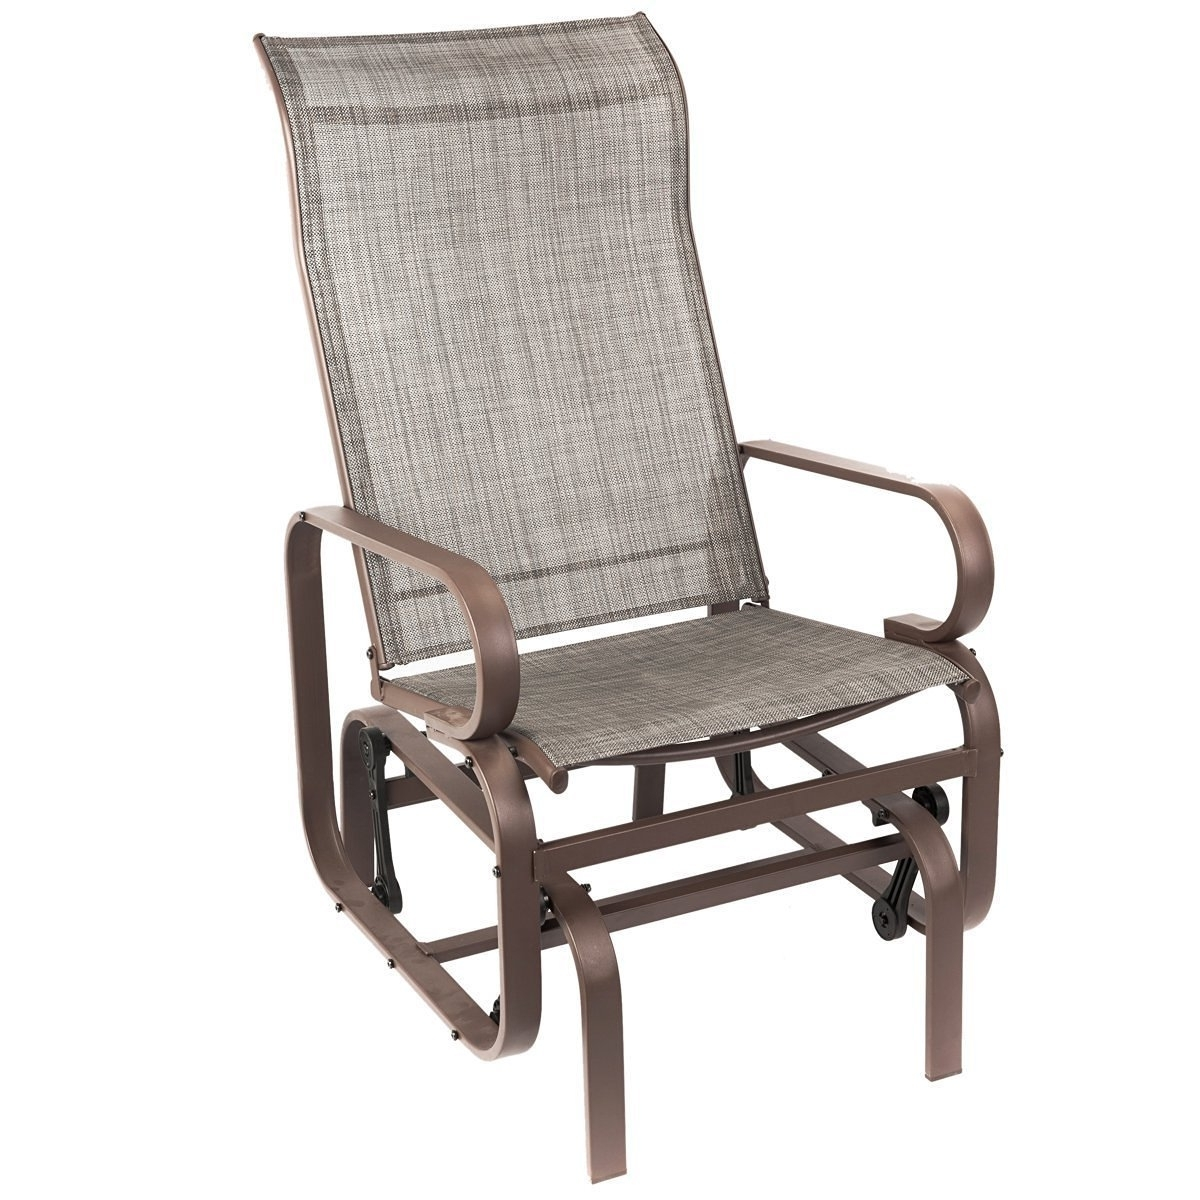 Famous Outdoor Furniture Rocking Chair – Outdoor Designs Pertaining To Patio Furniture Rocking Benches (View 14 of 15)